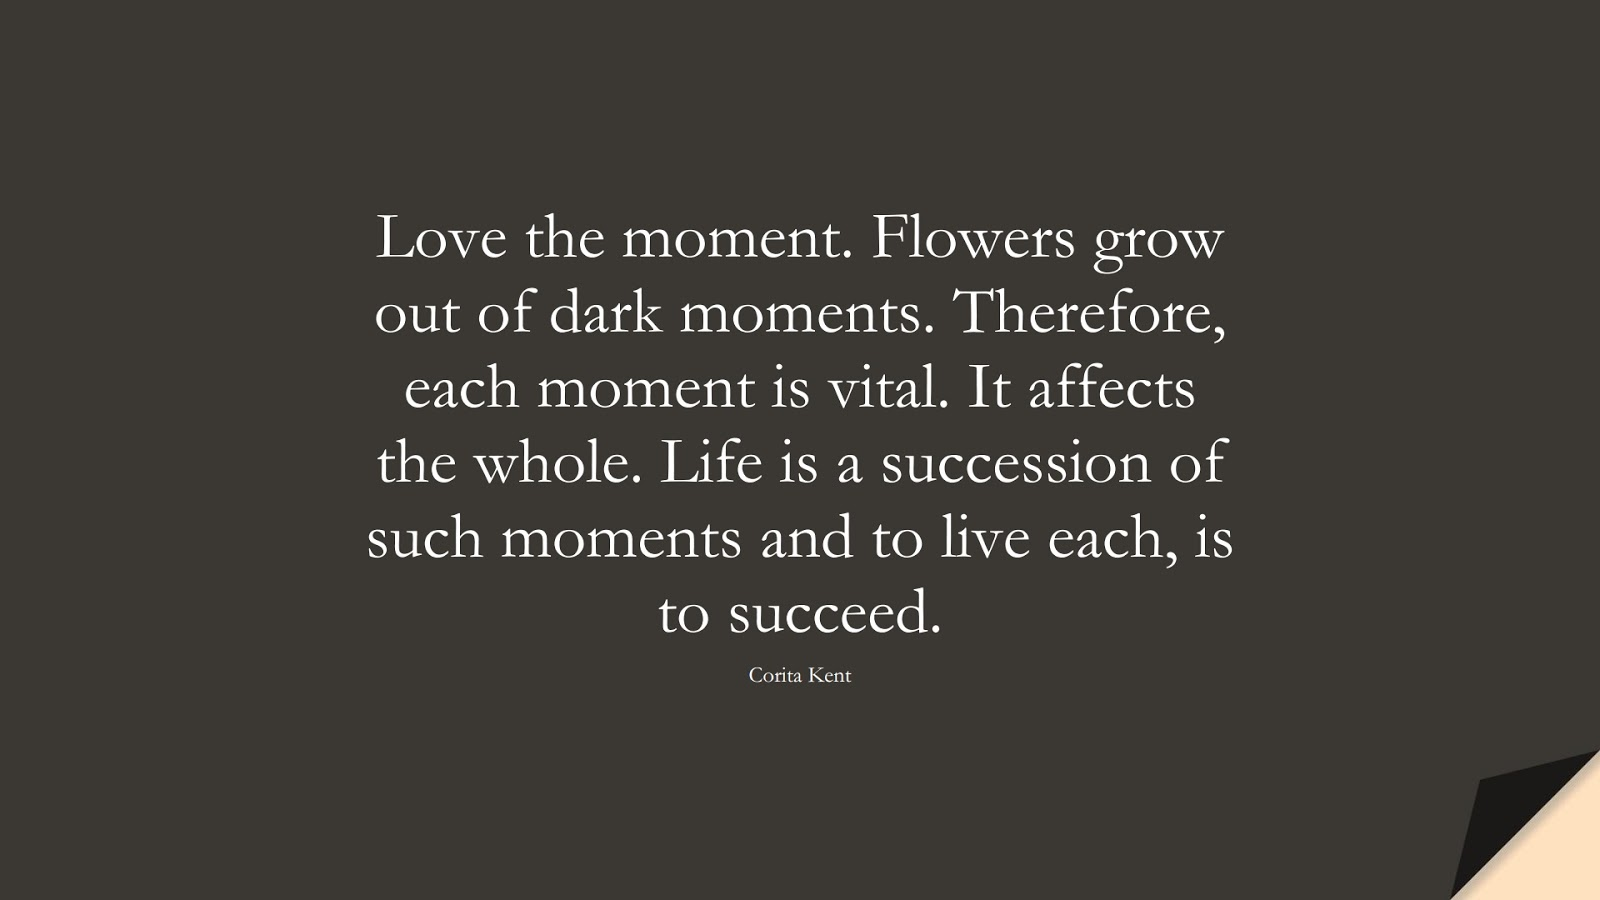 Love the moment. Flowers grow out of dark moments. Therefore, each moment is vital. It affects the whole. Life is a succession of such moments and to live each, is to succeed. (Corita Kent);  #SuccessQuotes